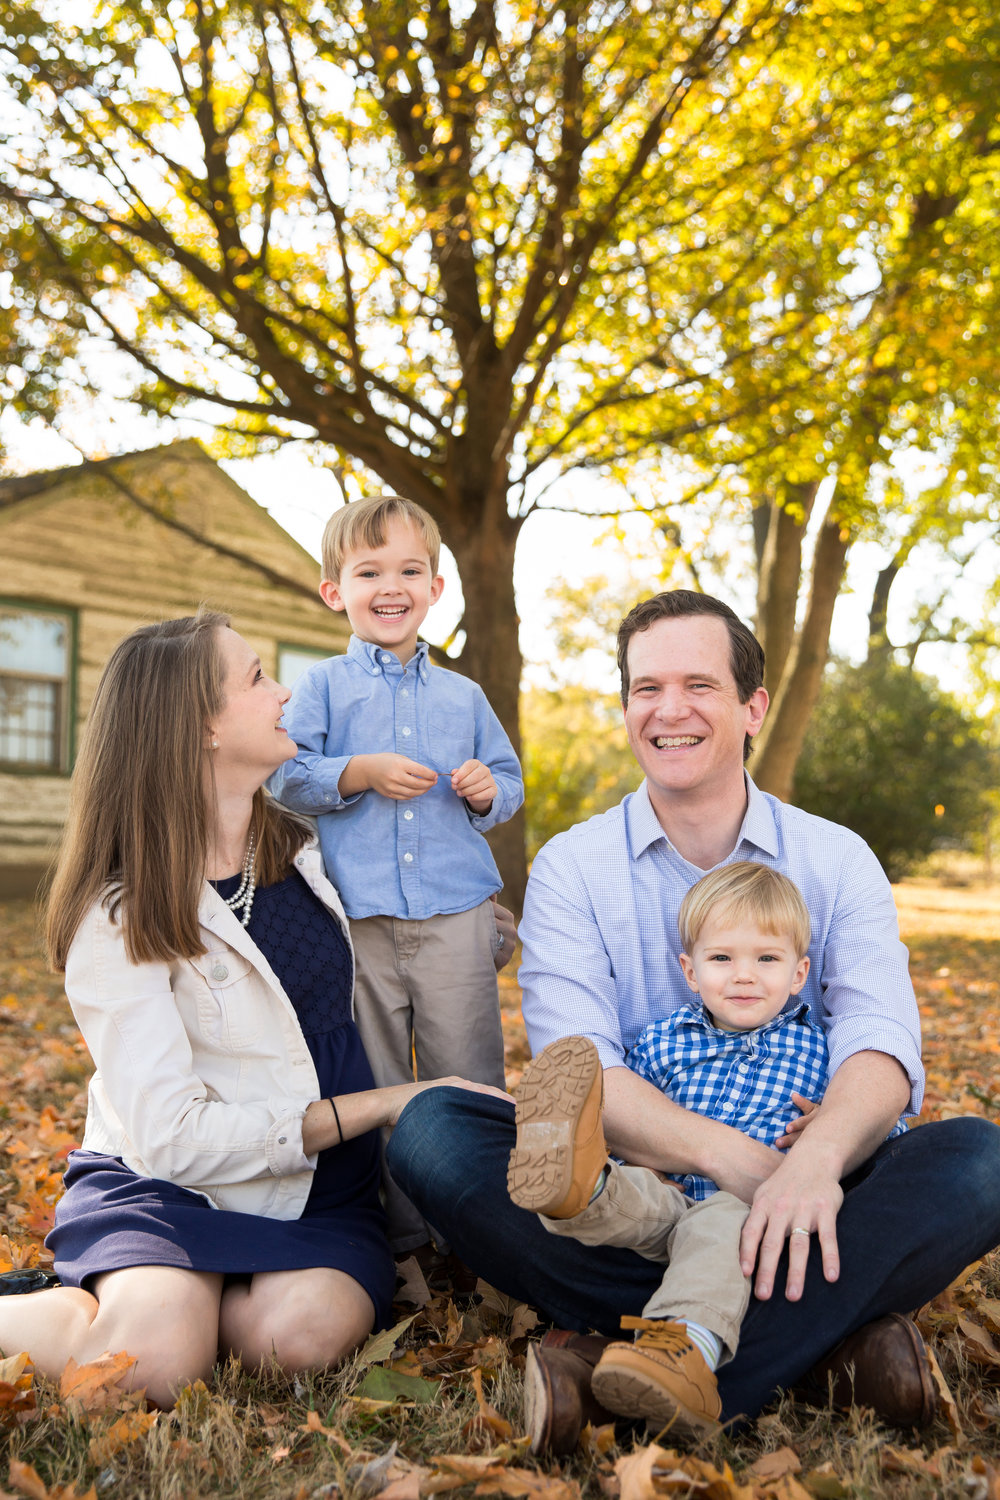 10-29-16 - Snead Family Pictures-12.jpg